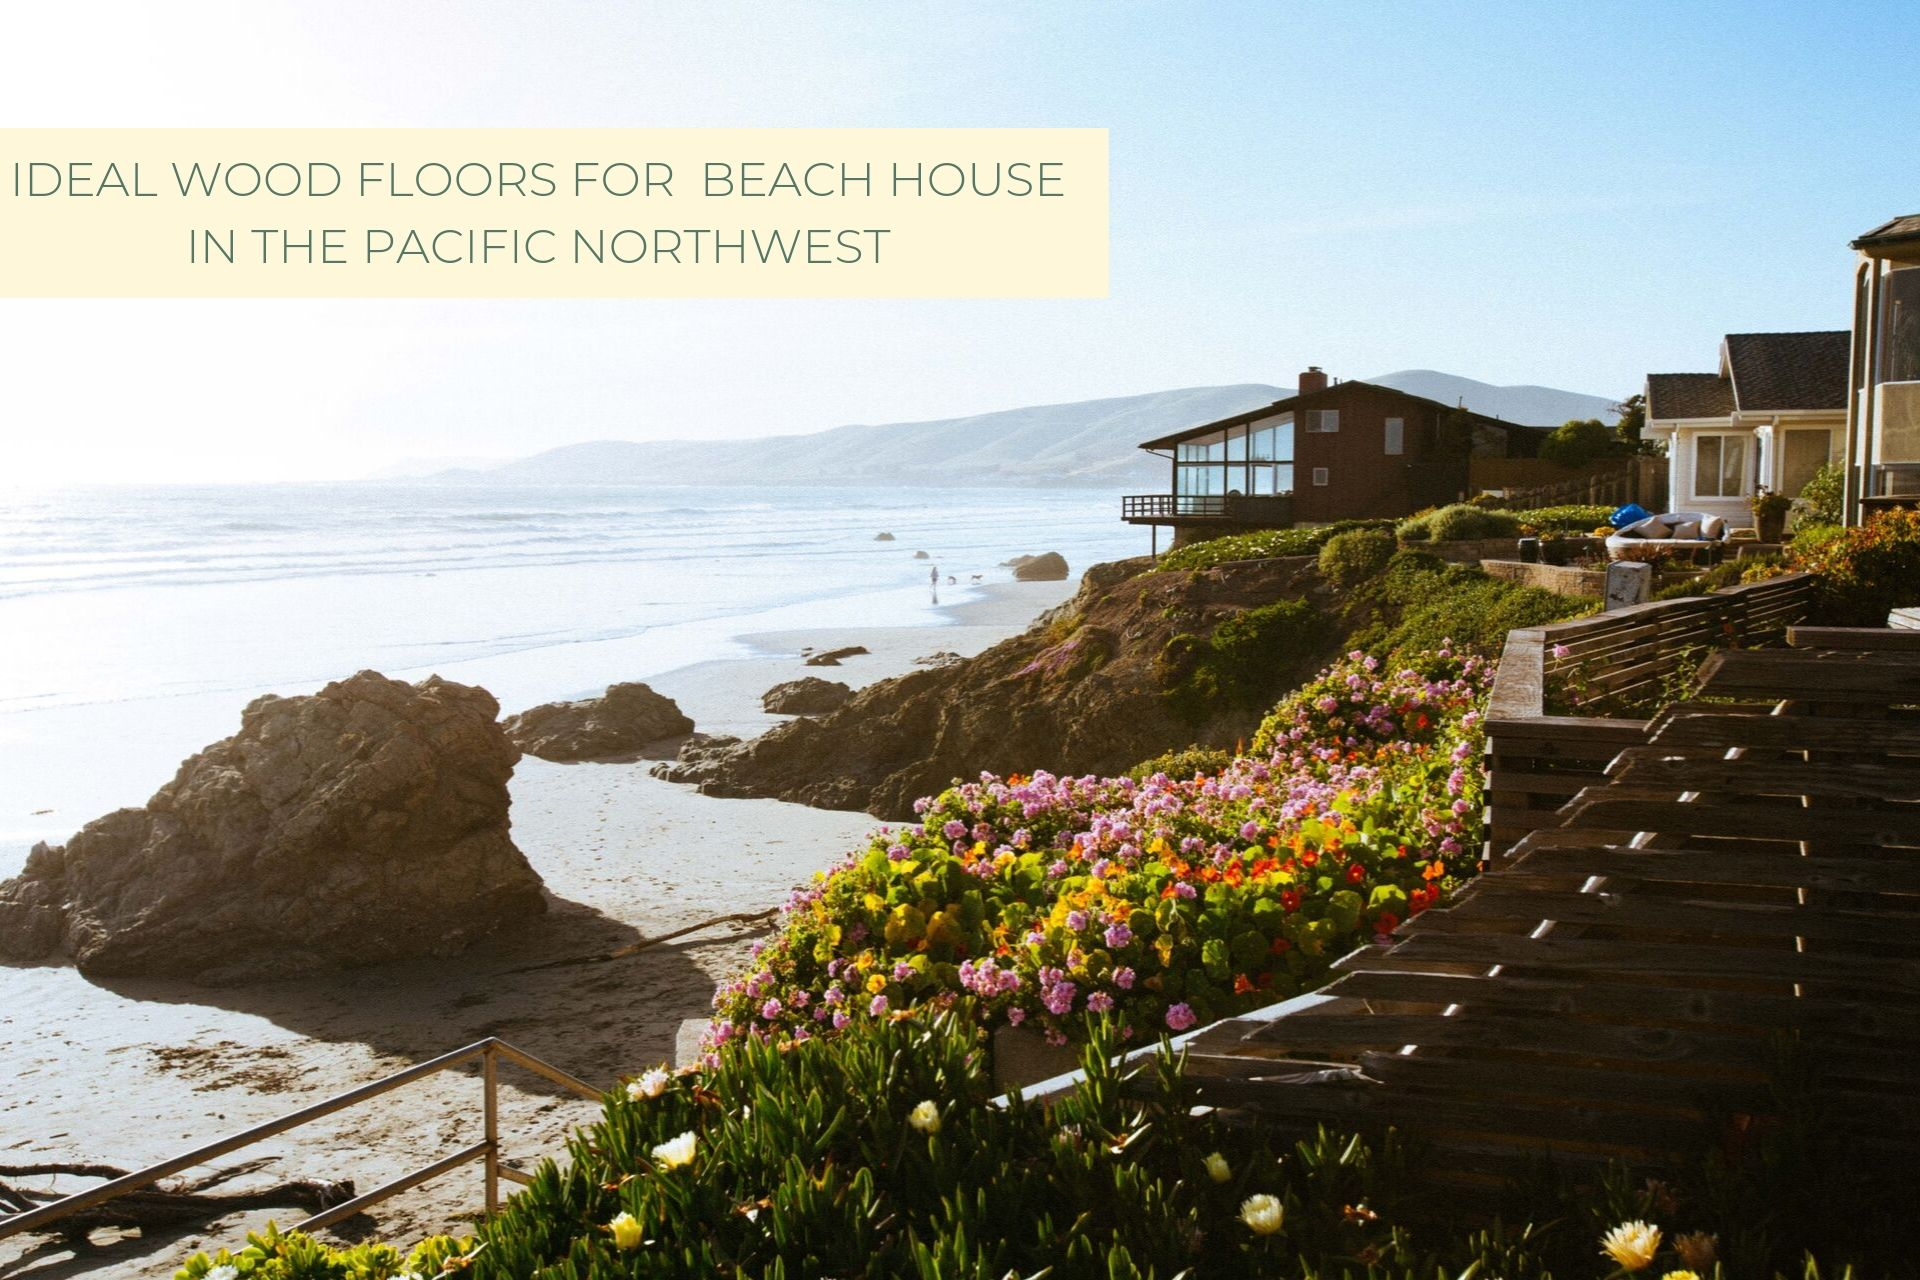 Castle Bespoke_ Ideal wood floors for a beach house in pacific northwest